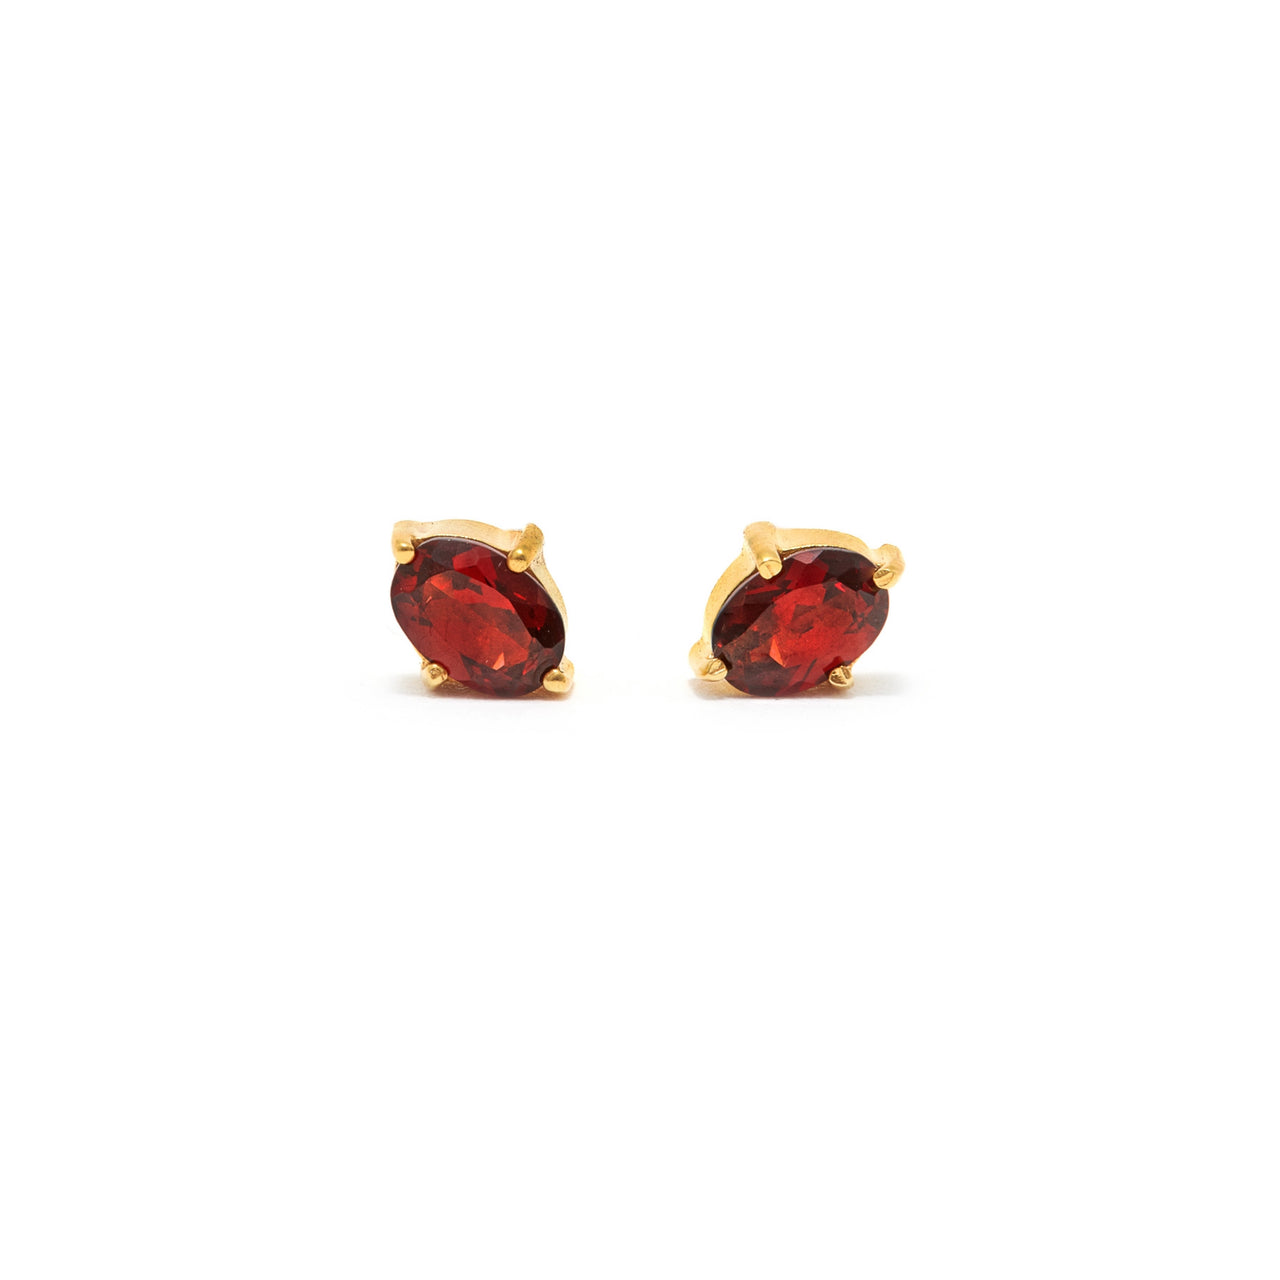 Garnet Oval Cut Stud Earrings-Earrings-Jaipur Atelier